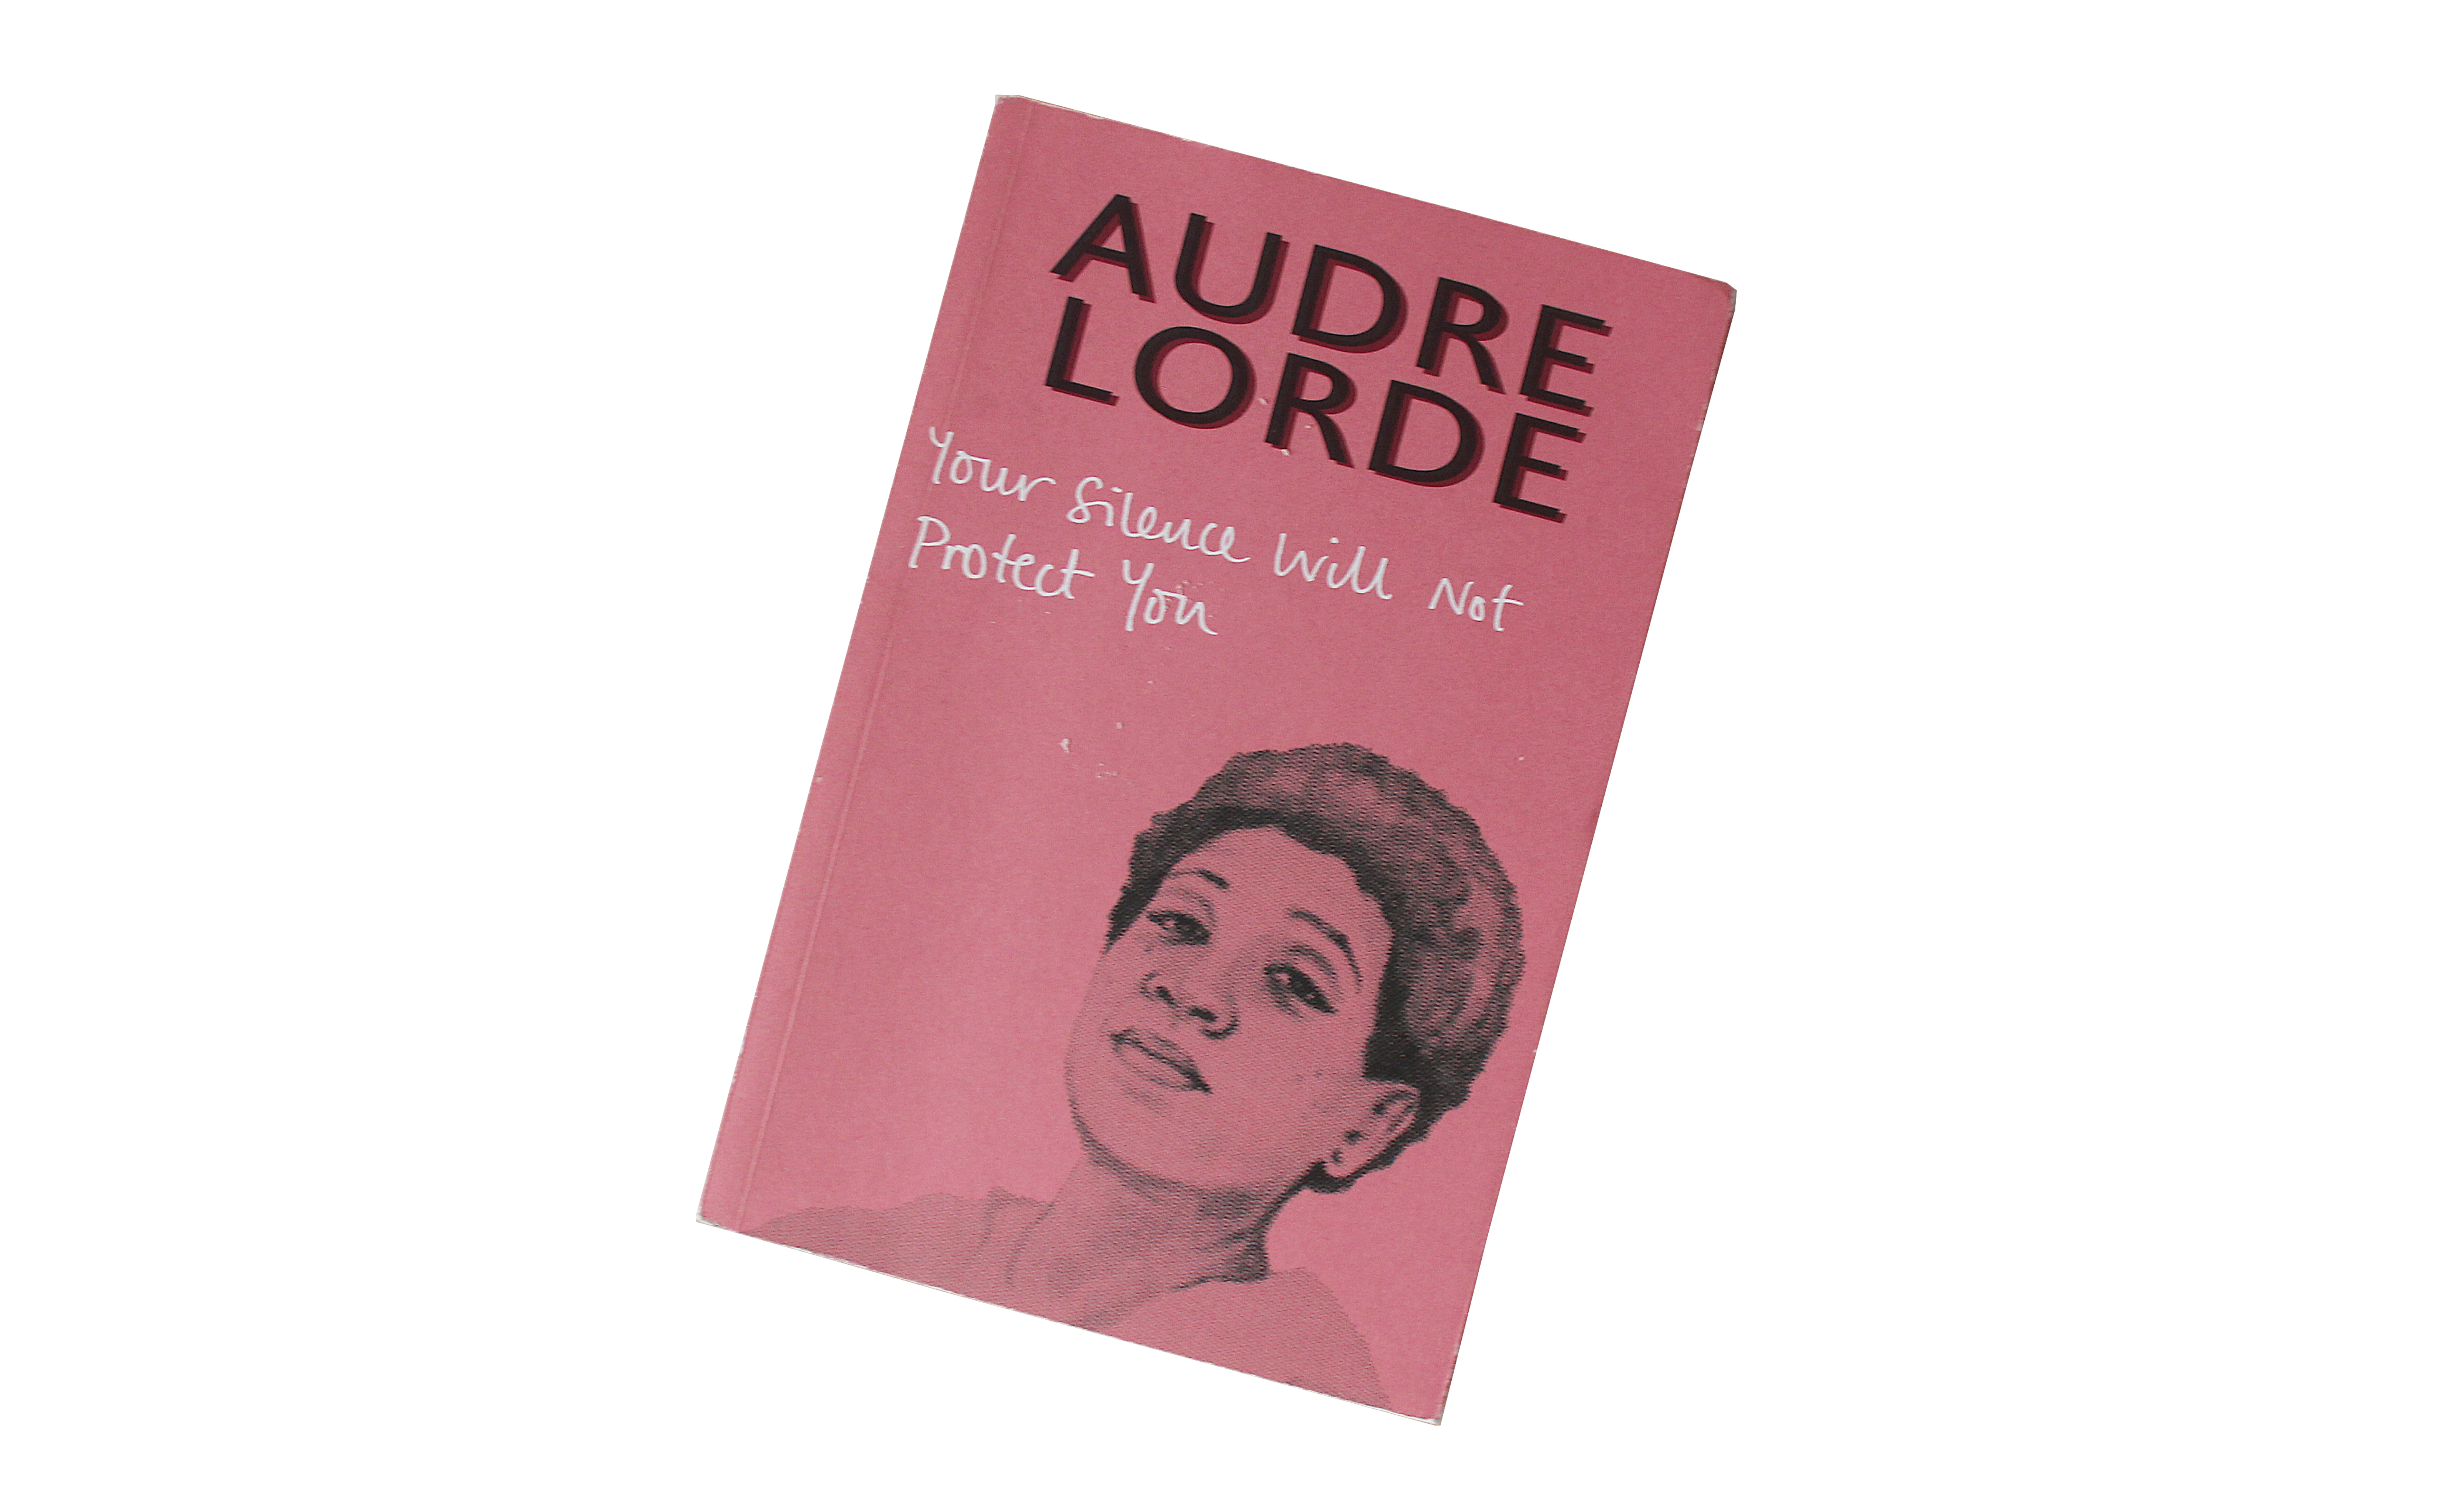 Your silence will not protect you, Audre Lorde